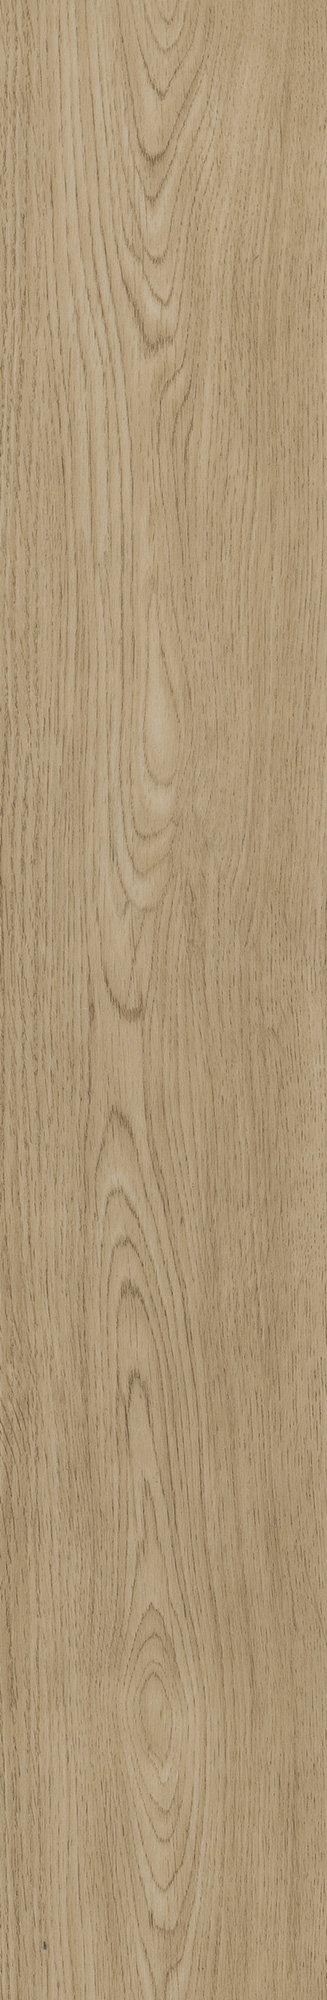 Natural Oak Vinyl Click Flooring large view - Luvanto